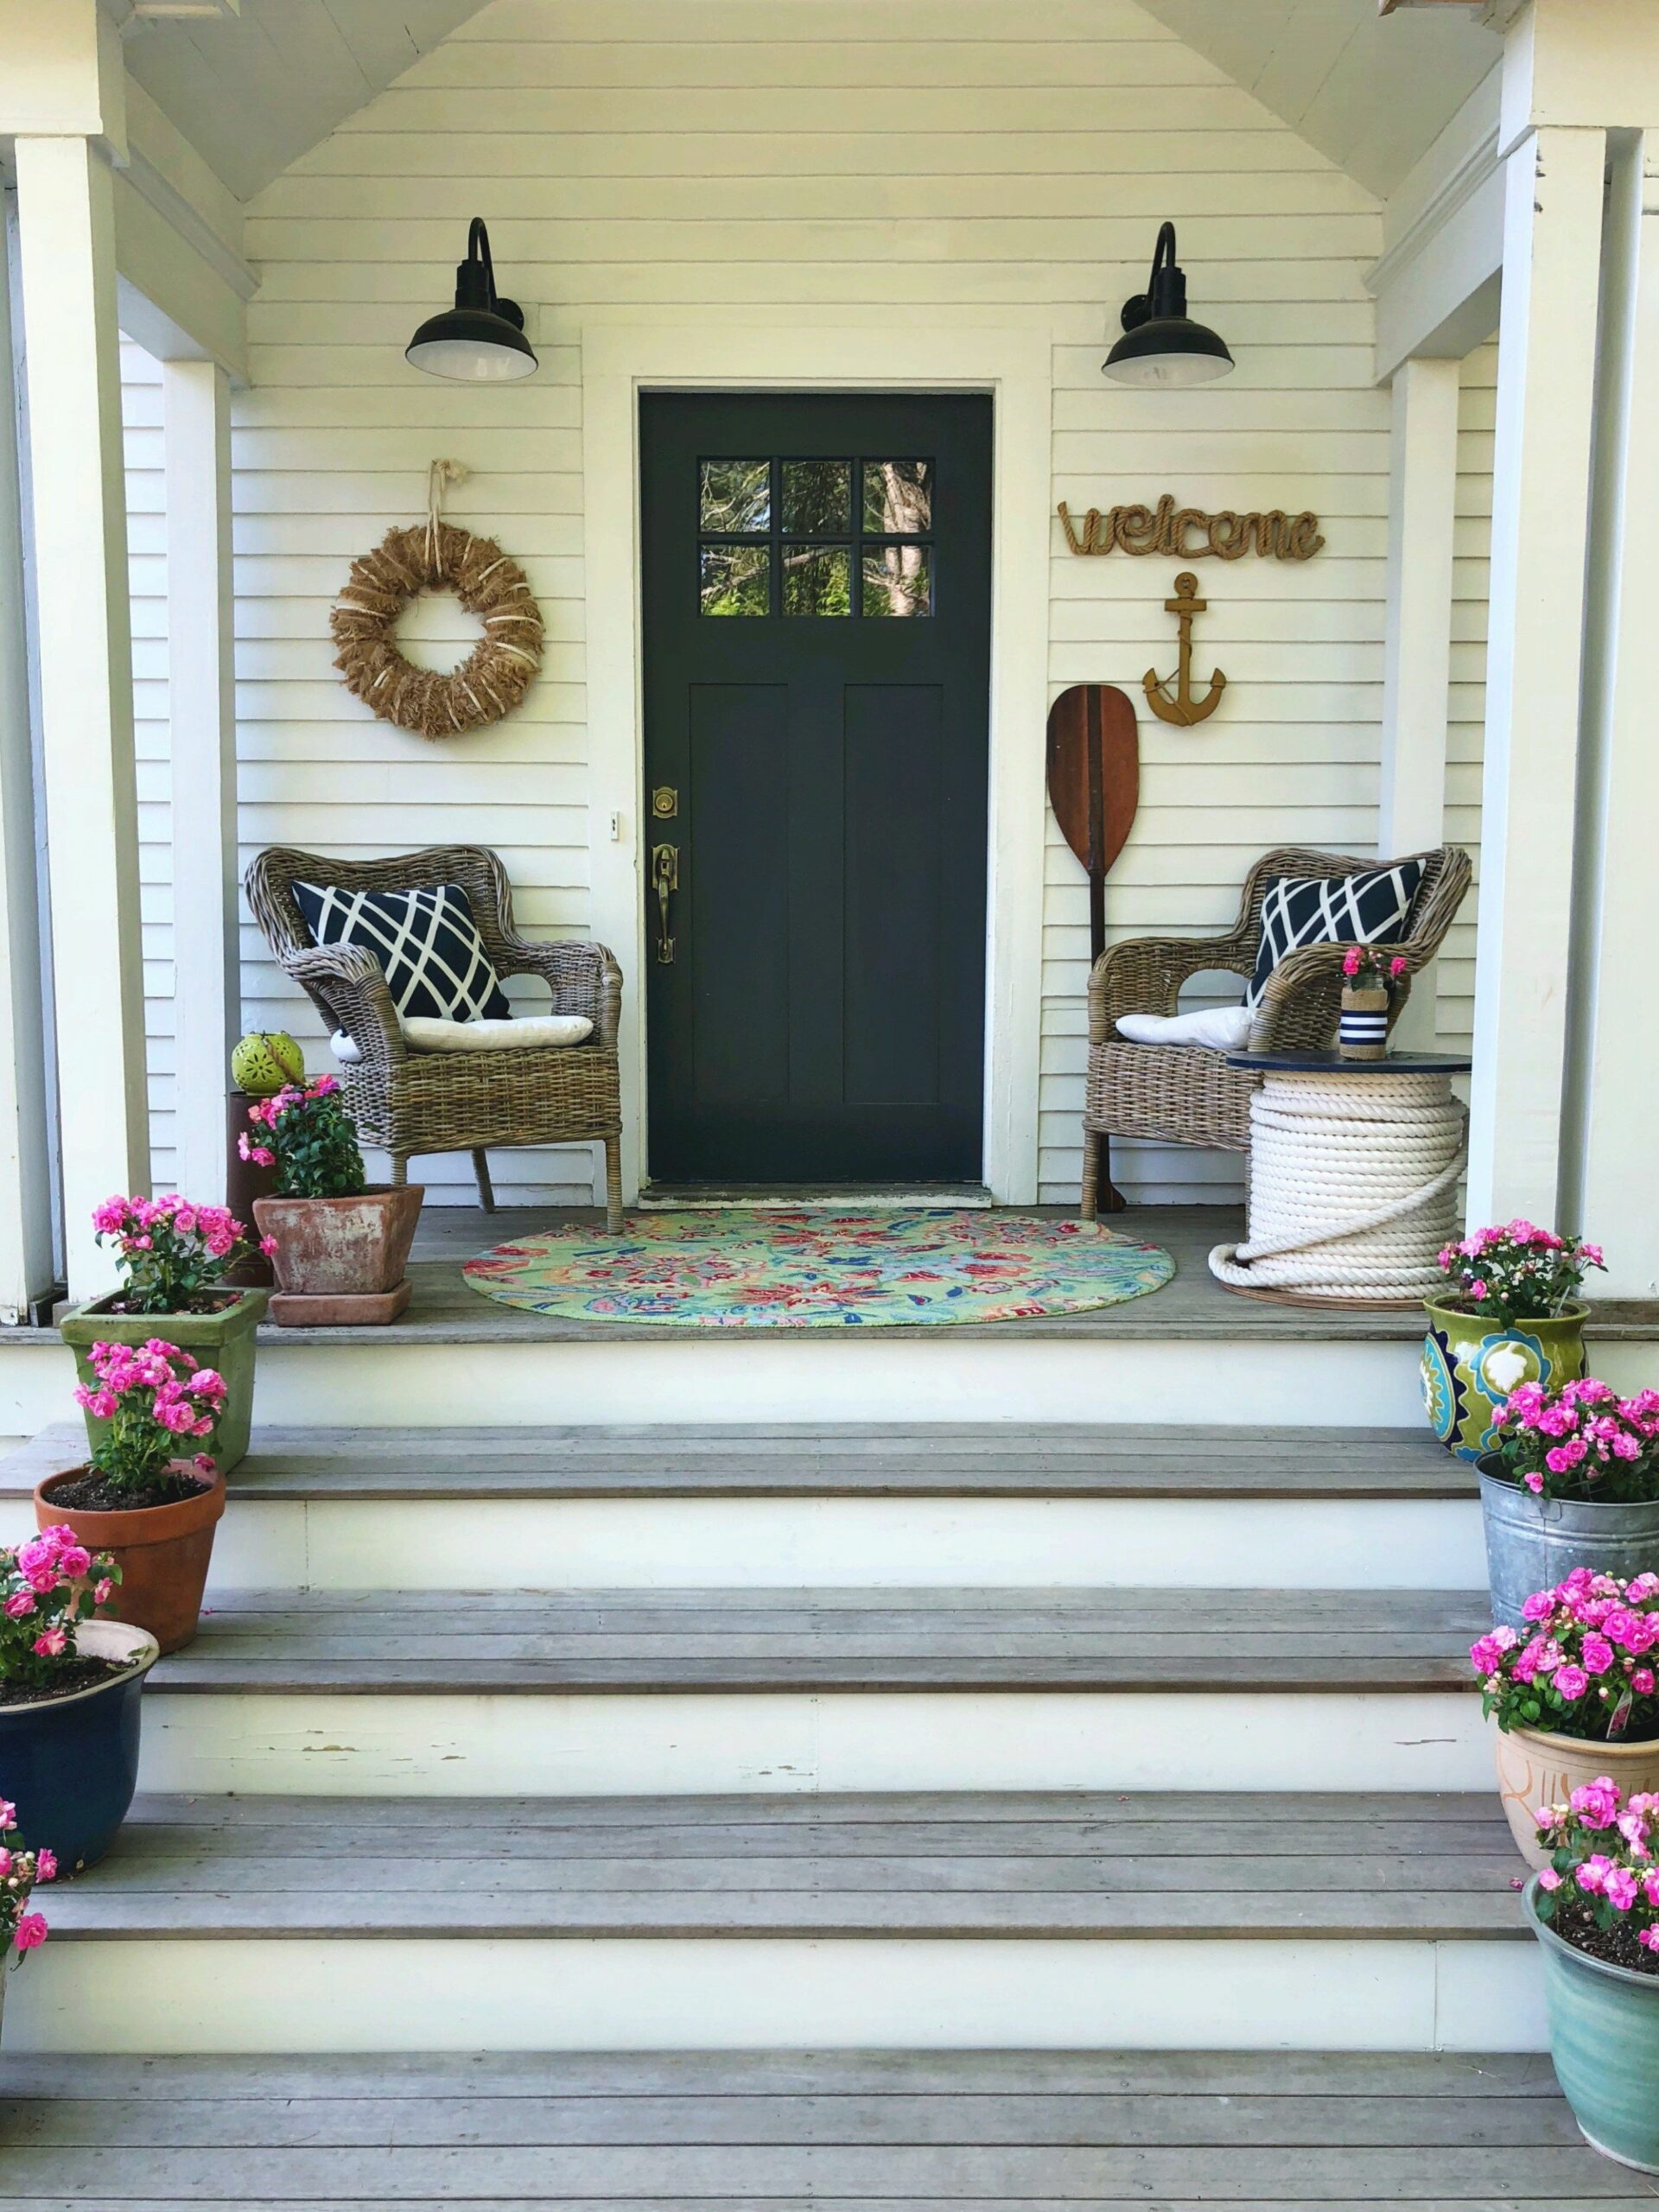 My Front Porch at the Beach House (With images) | Beach porch ..